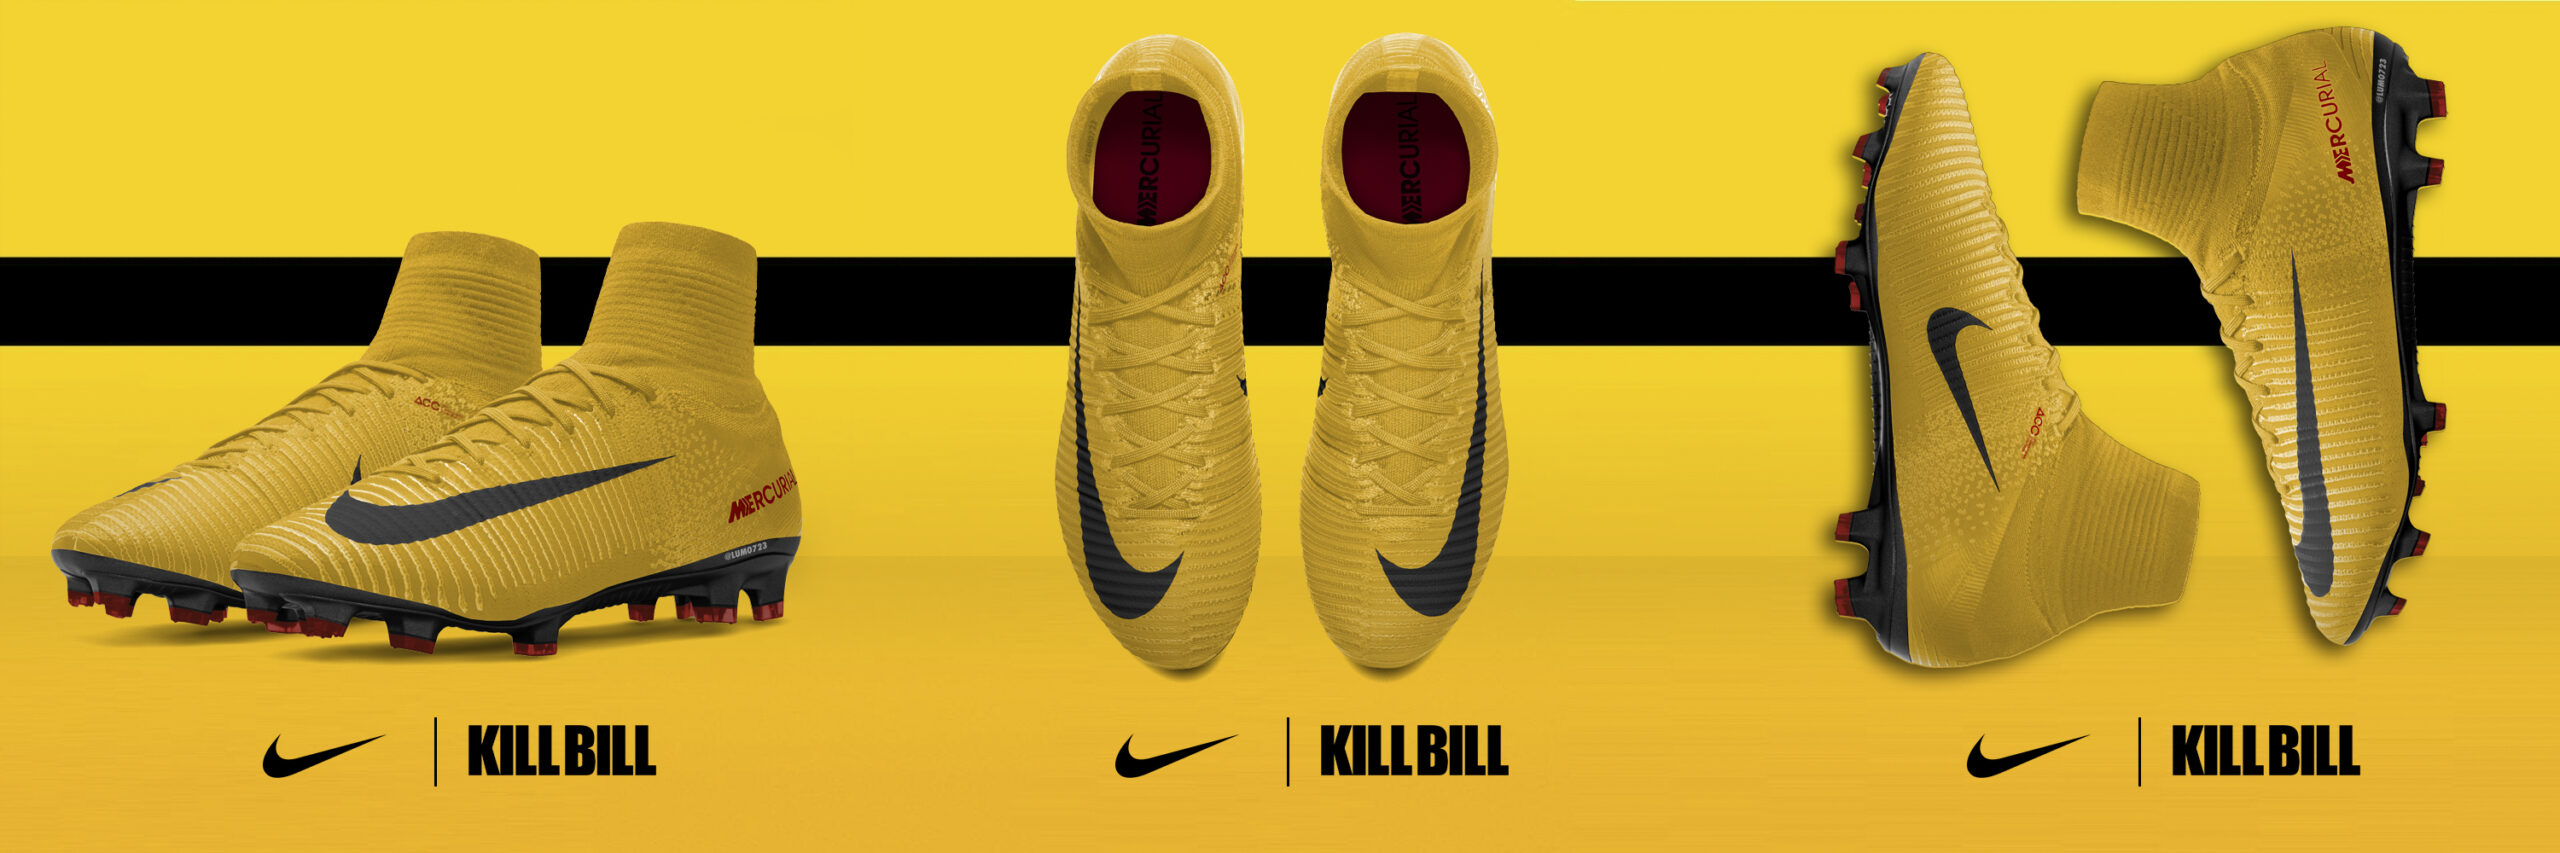 Mercurial Kill Bill-wide